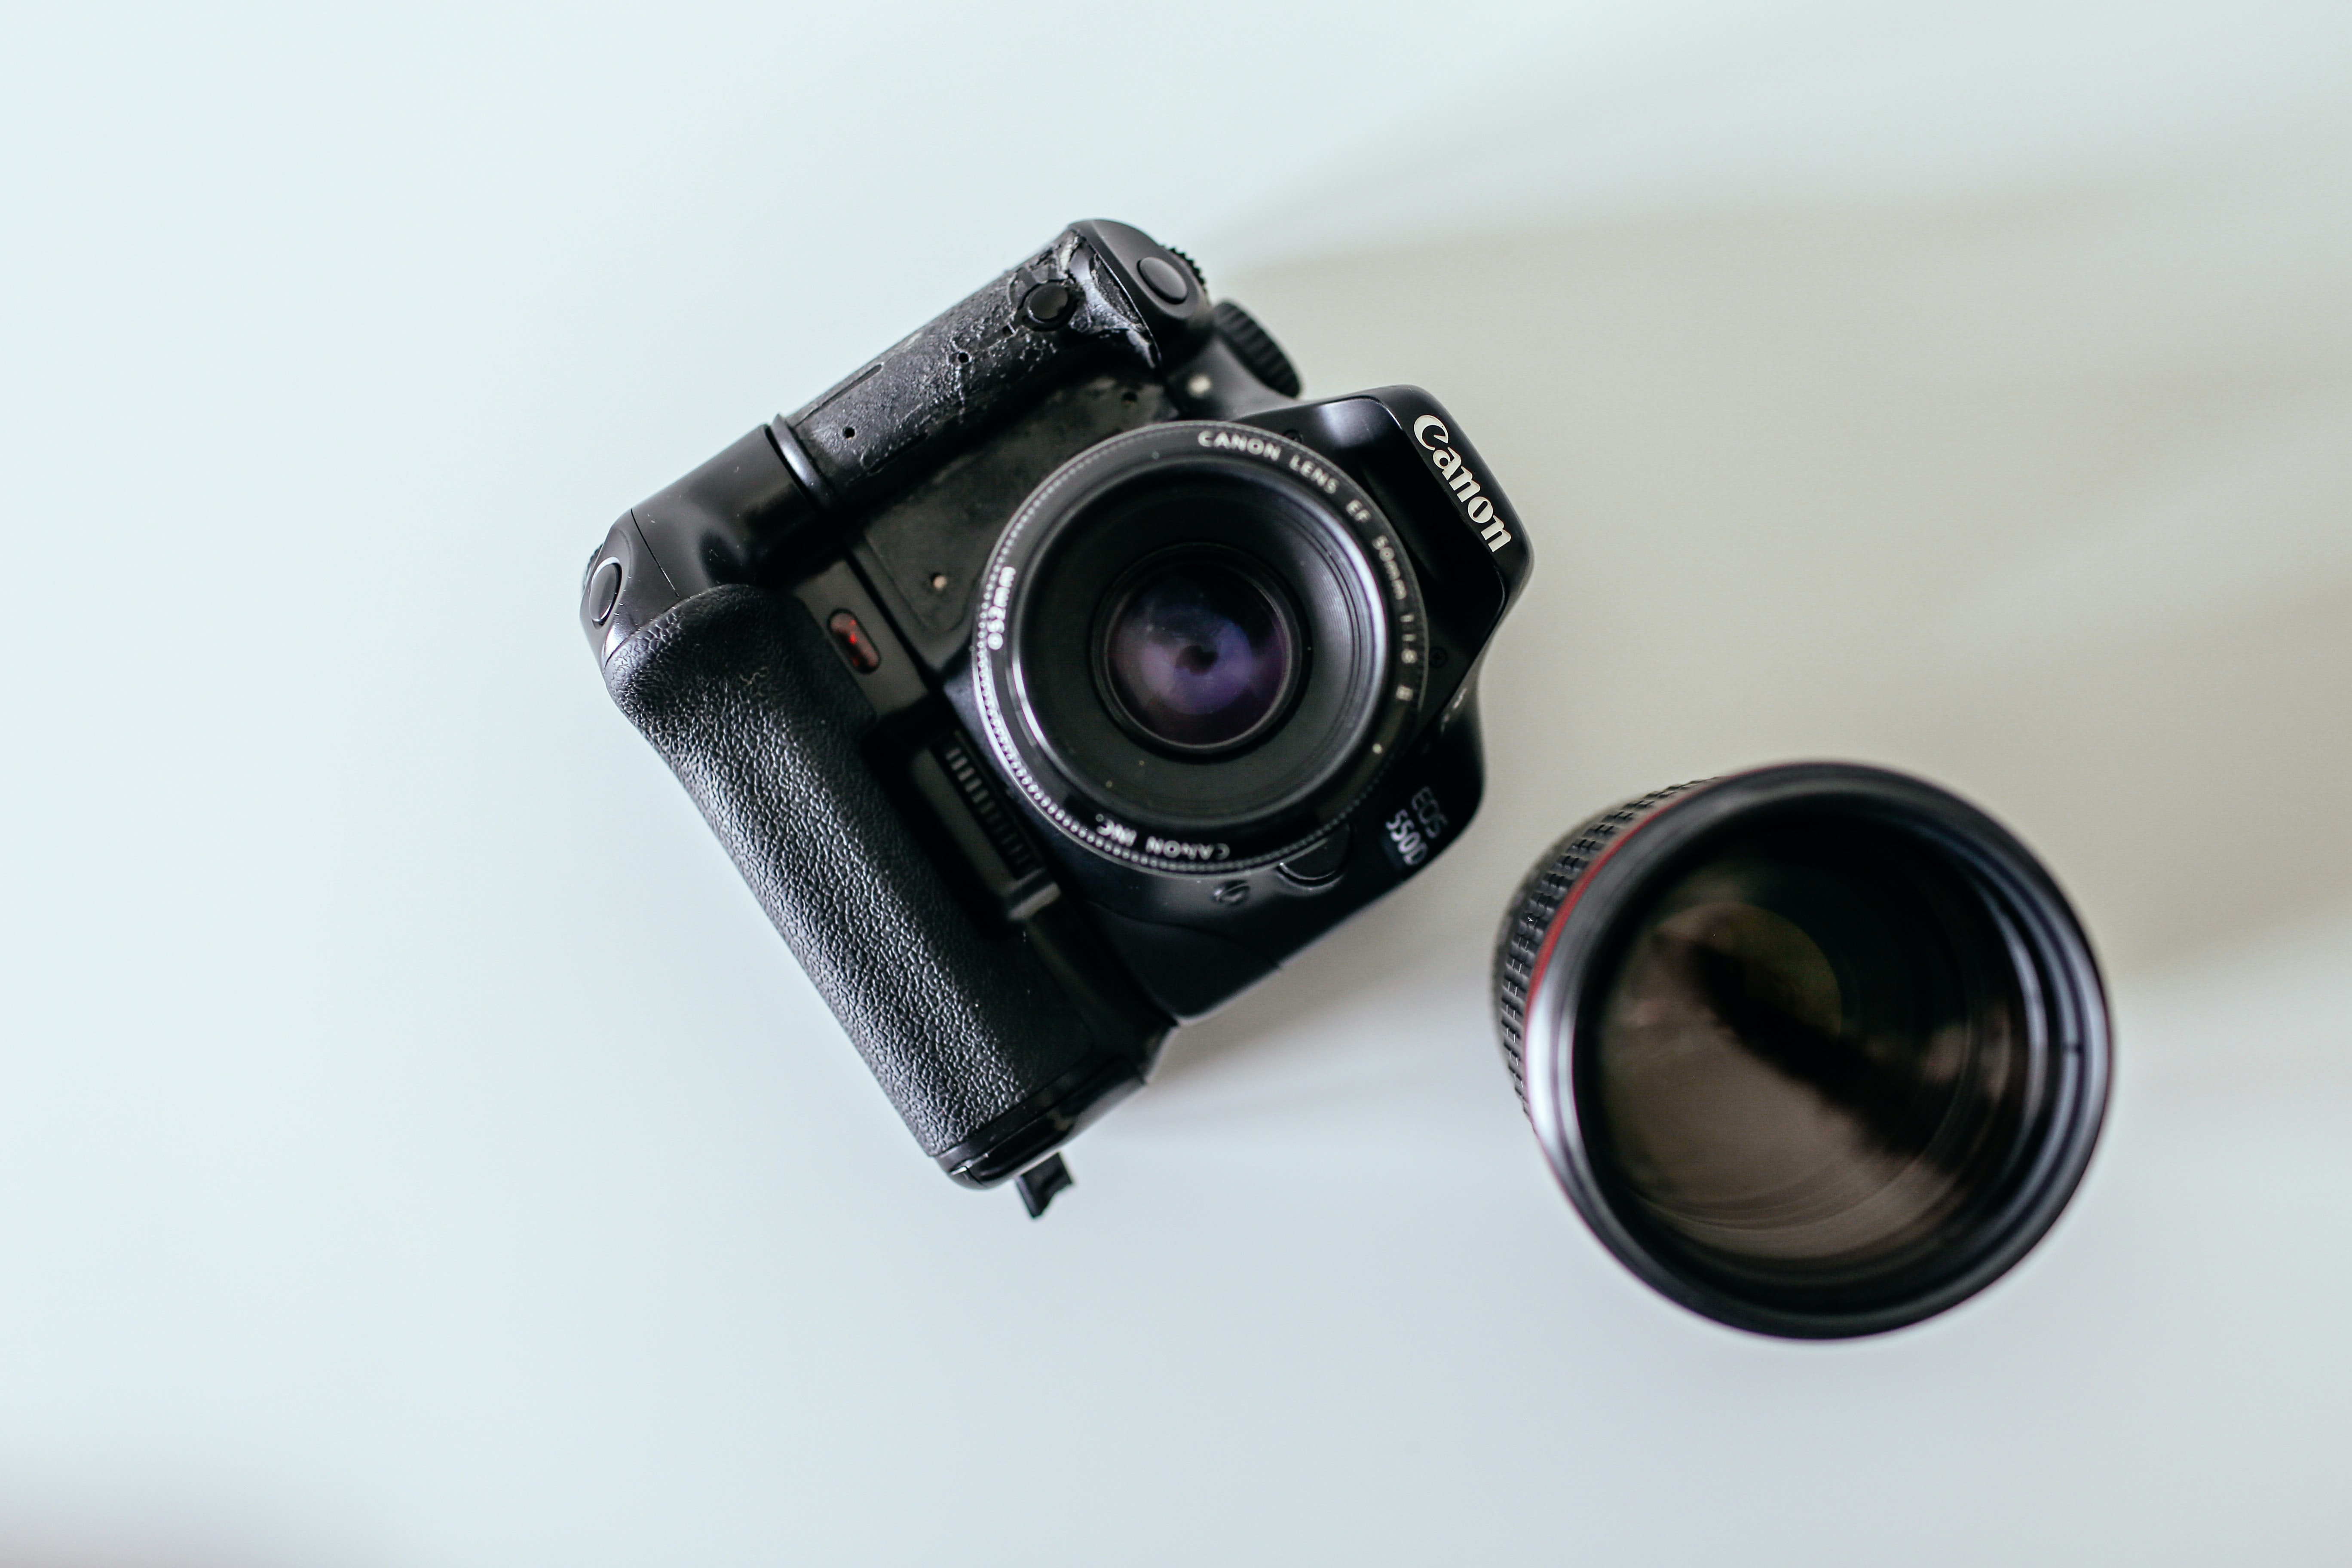 Canon EOS 550D camera on a white surface beside lens